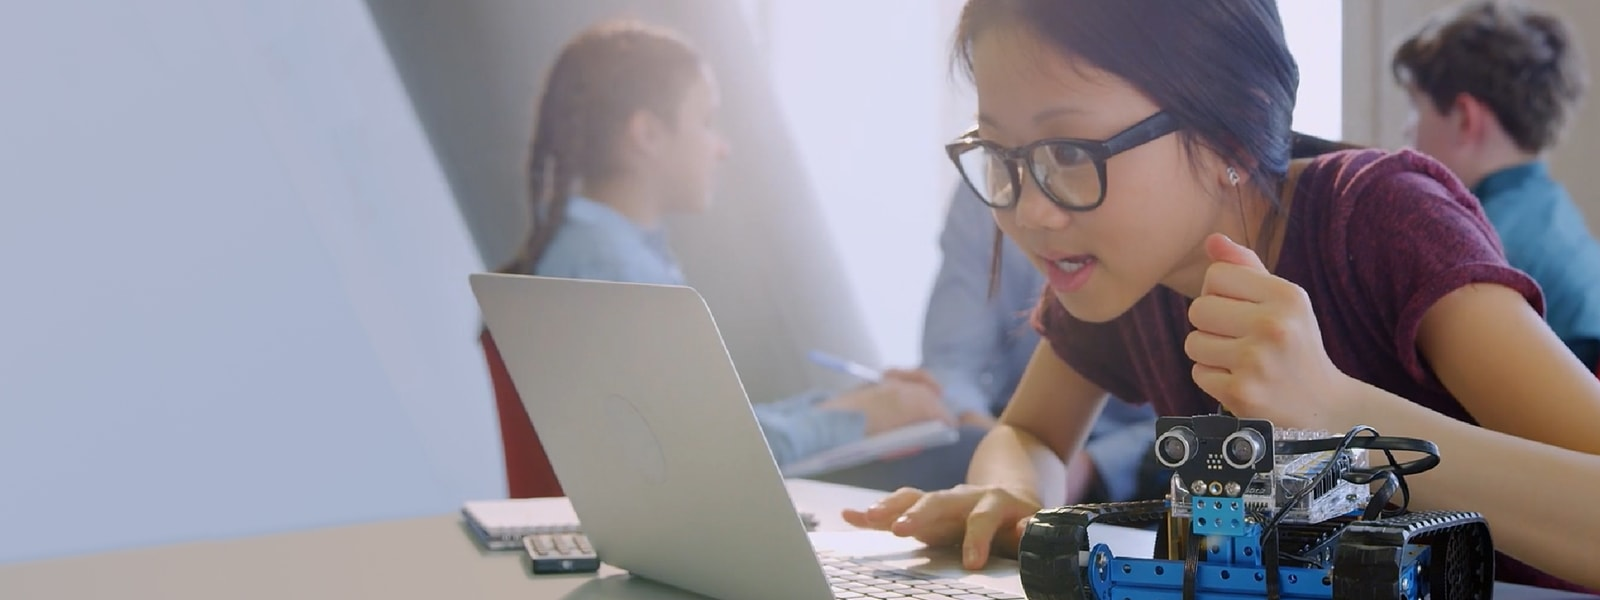 Girl works on a computer next to a robot in a classroom.